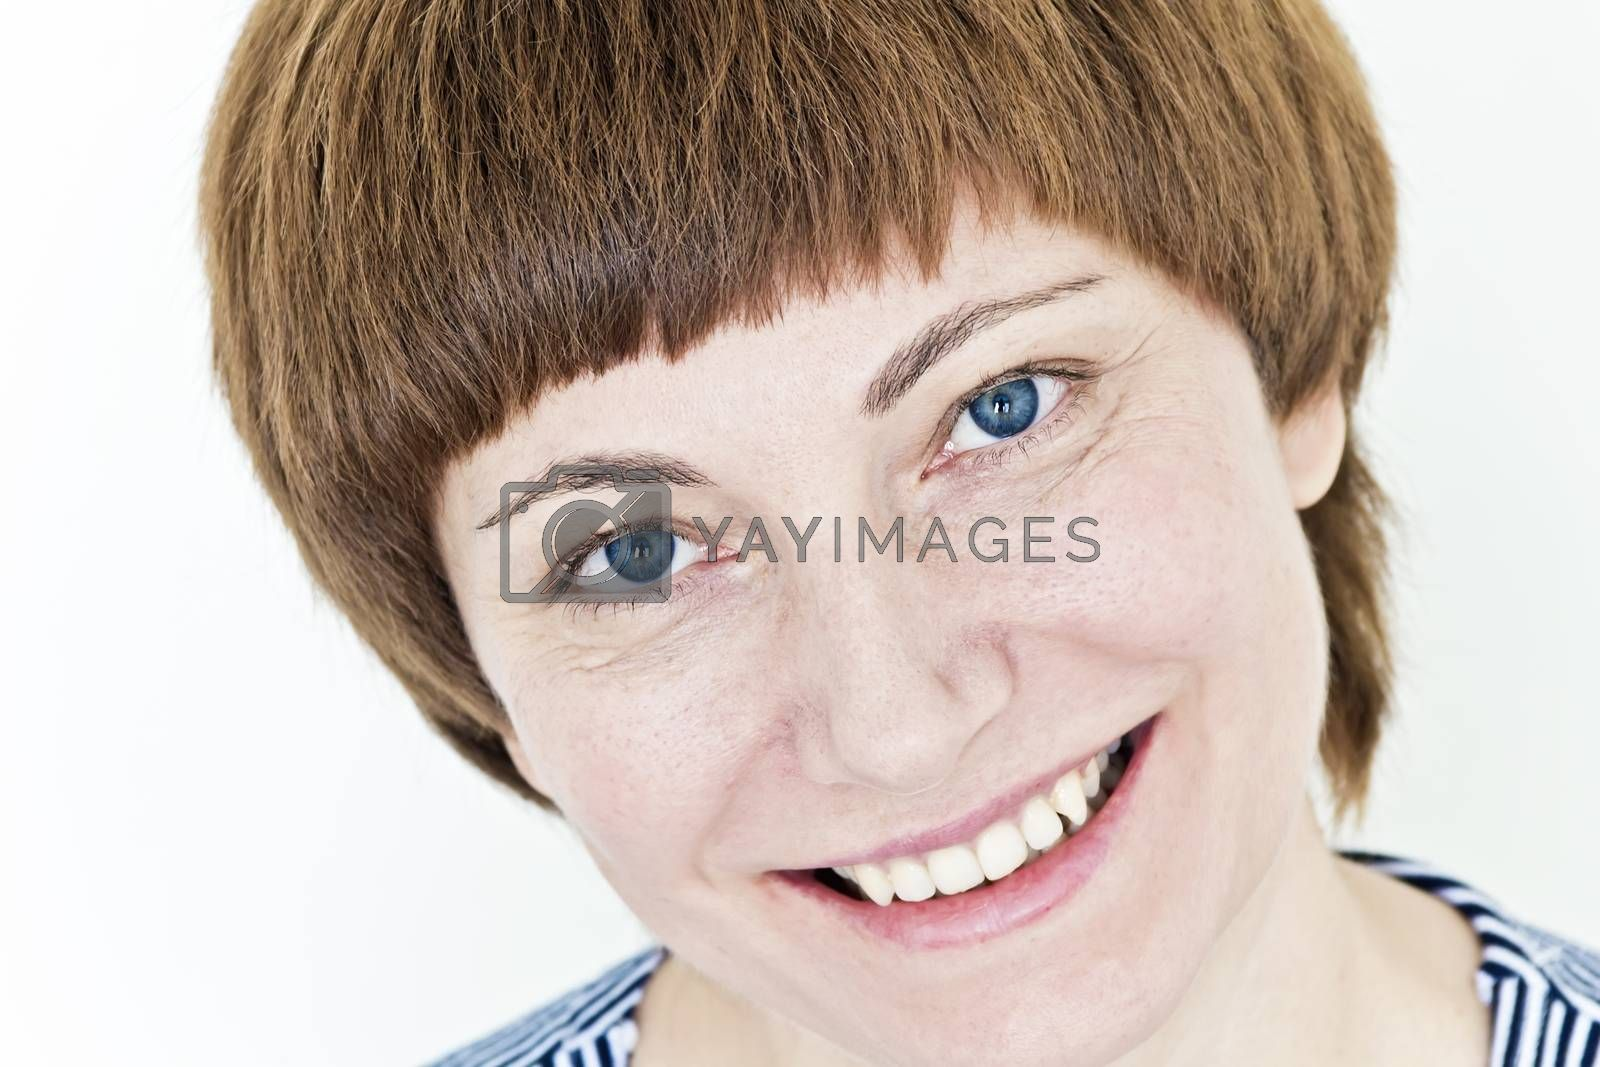 Smiling face of woman with red hair and blue eyes on white